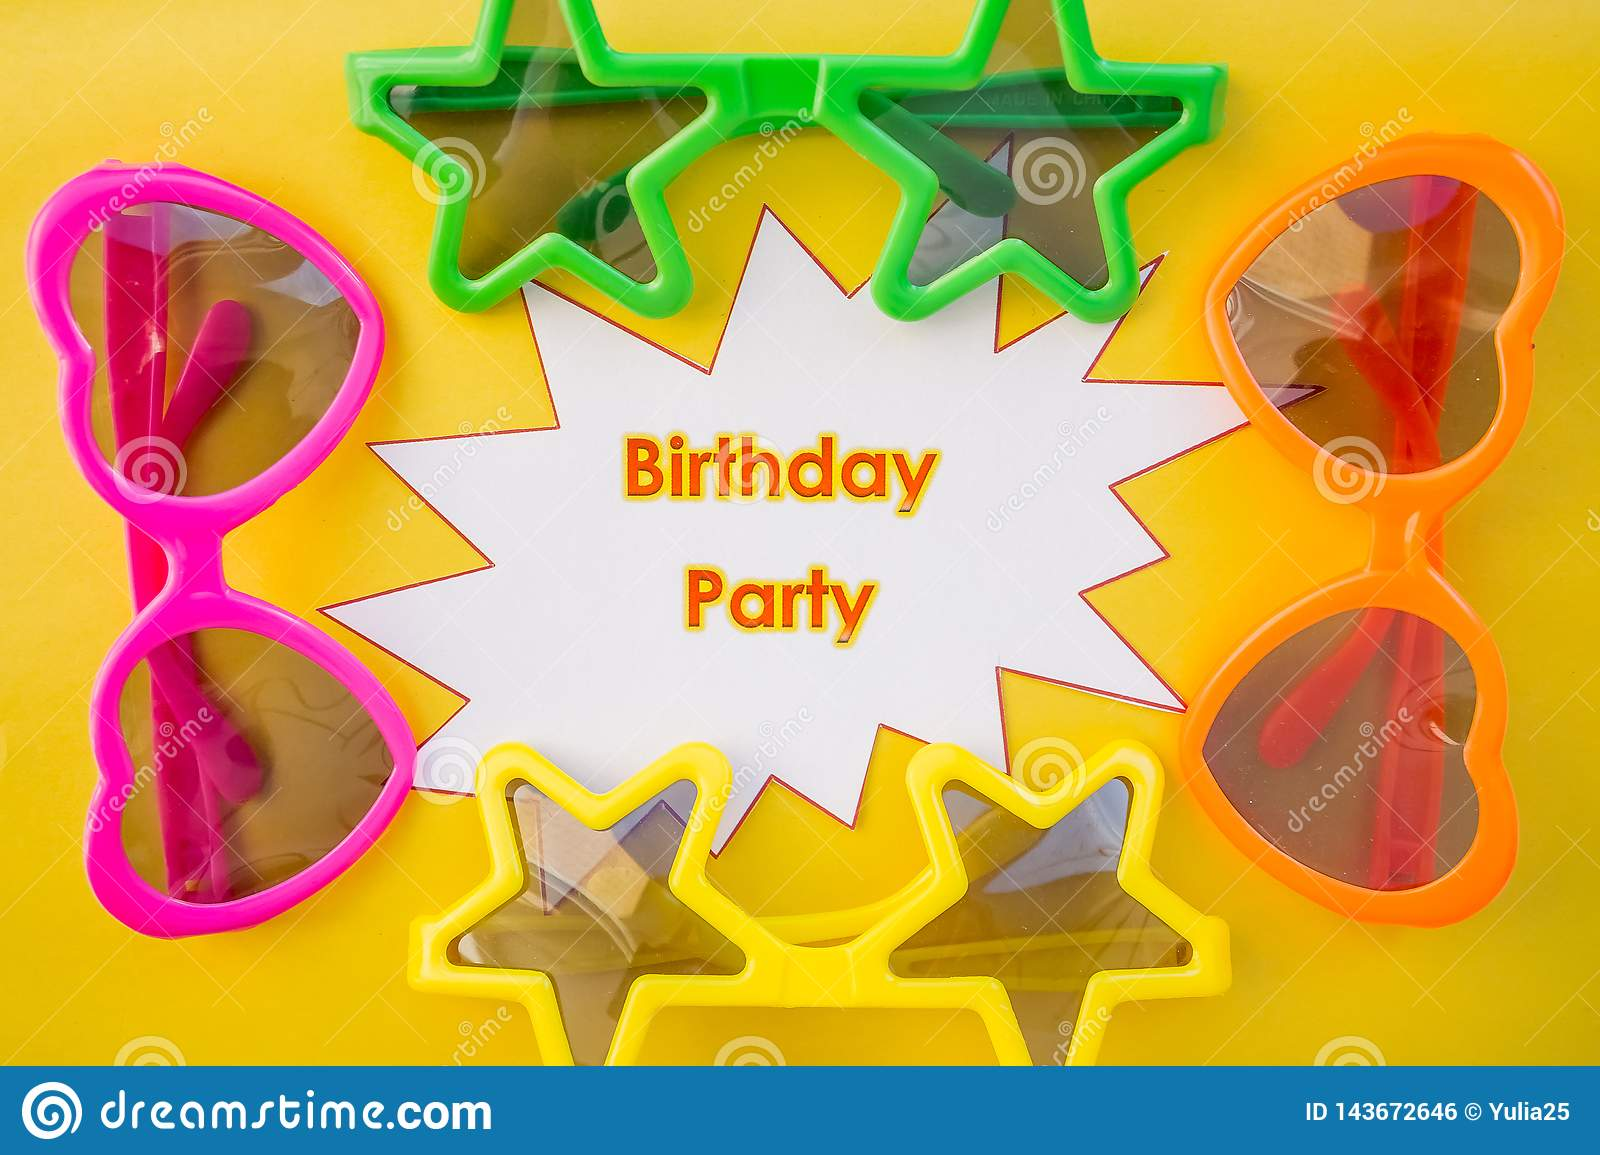 Set of cute celebratory sunglasses saying happy birthday.Birthday party concept. Funny sunny glasses on yellow